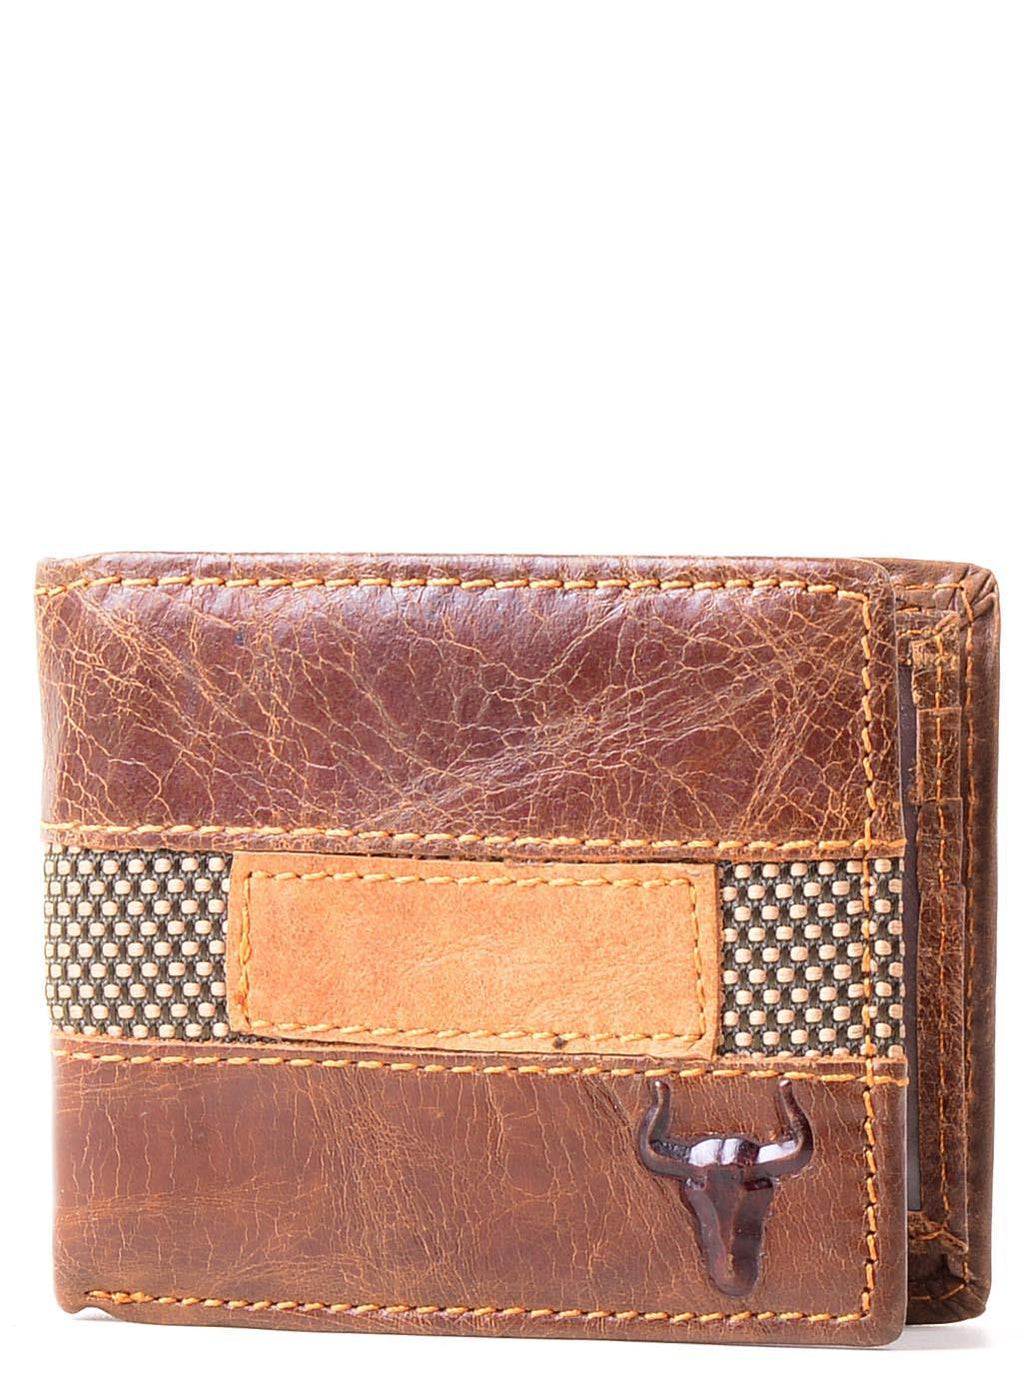 EthniCache Wallet Chic Handmade Pure Leather Wallet